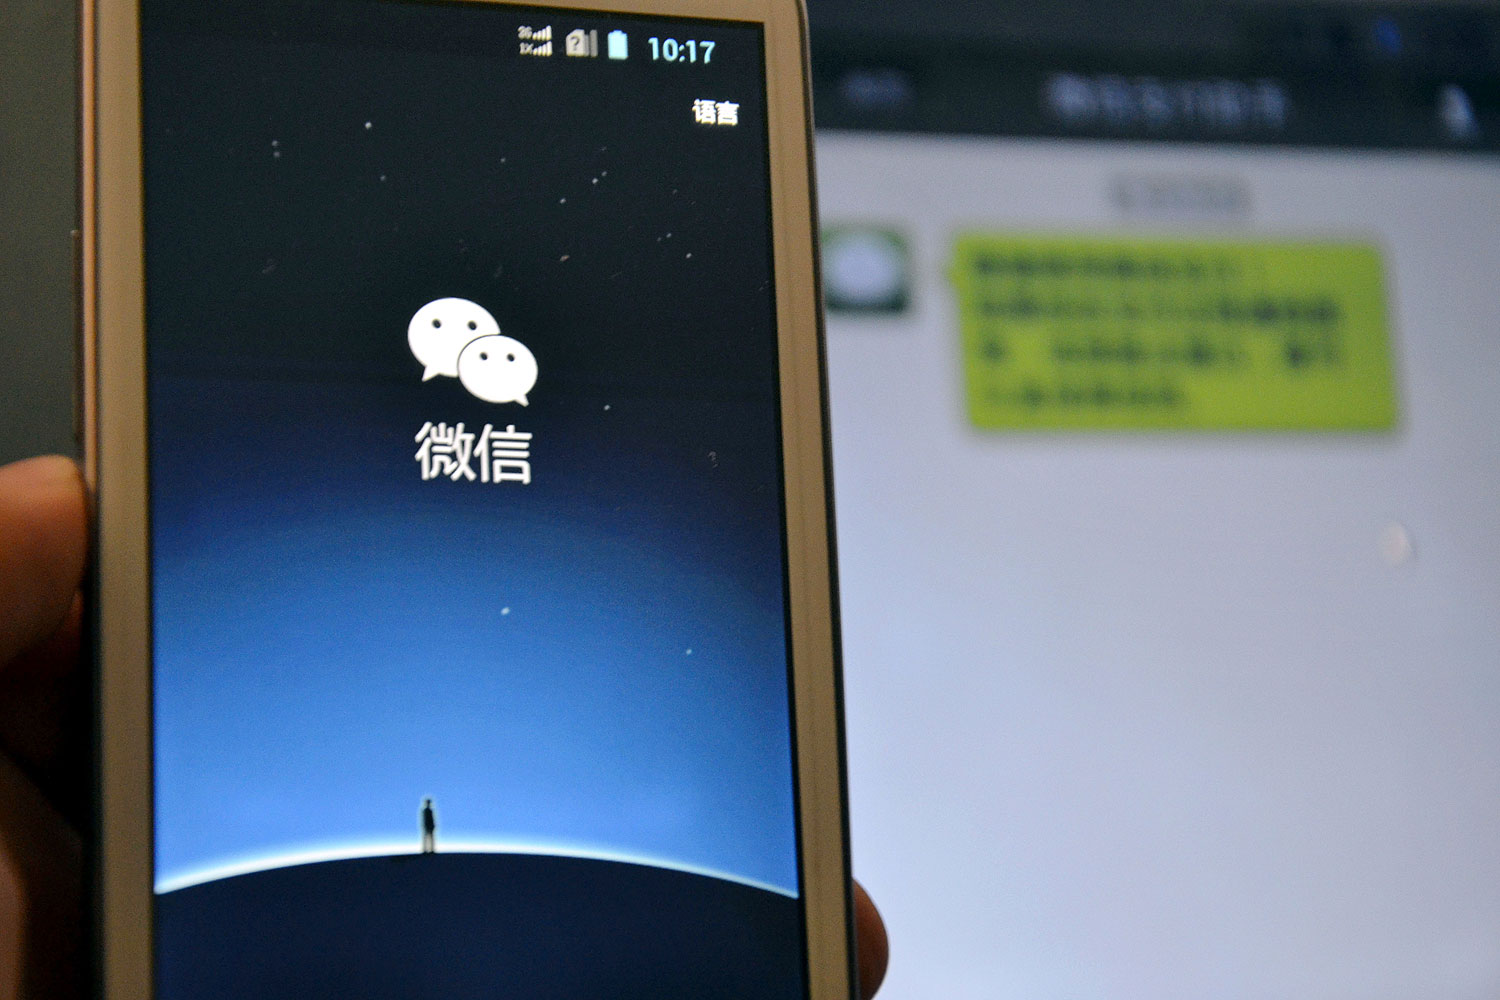 A mobile phone user uses the mobile messaging app WeChat of Tencent on a smartphone in Wenling, east Chinas Zhejiang province, 19 Oct. 2013